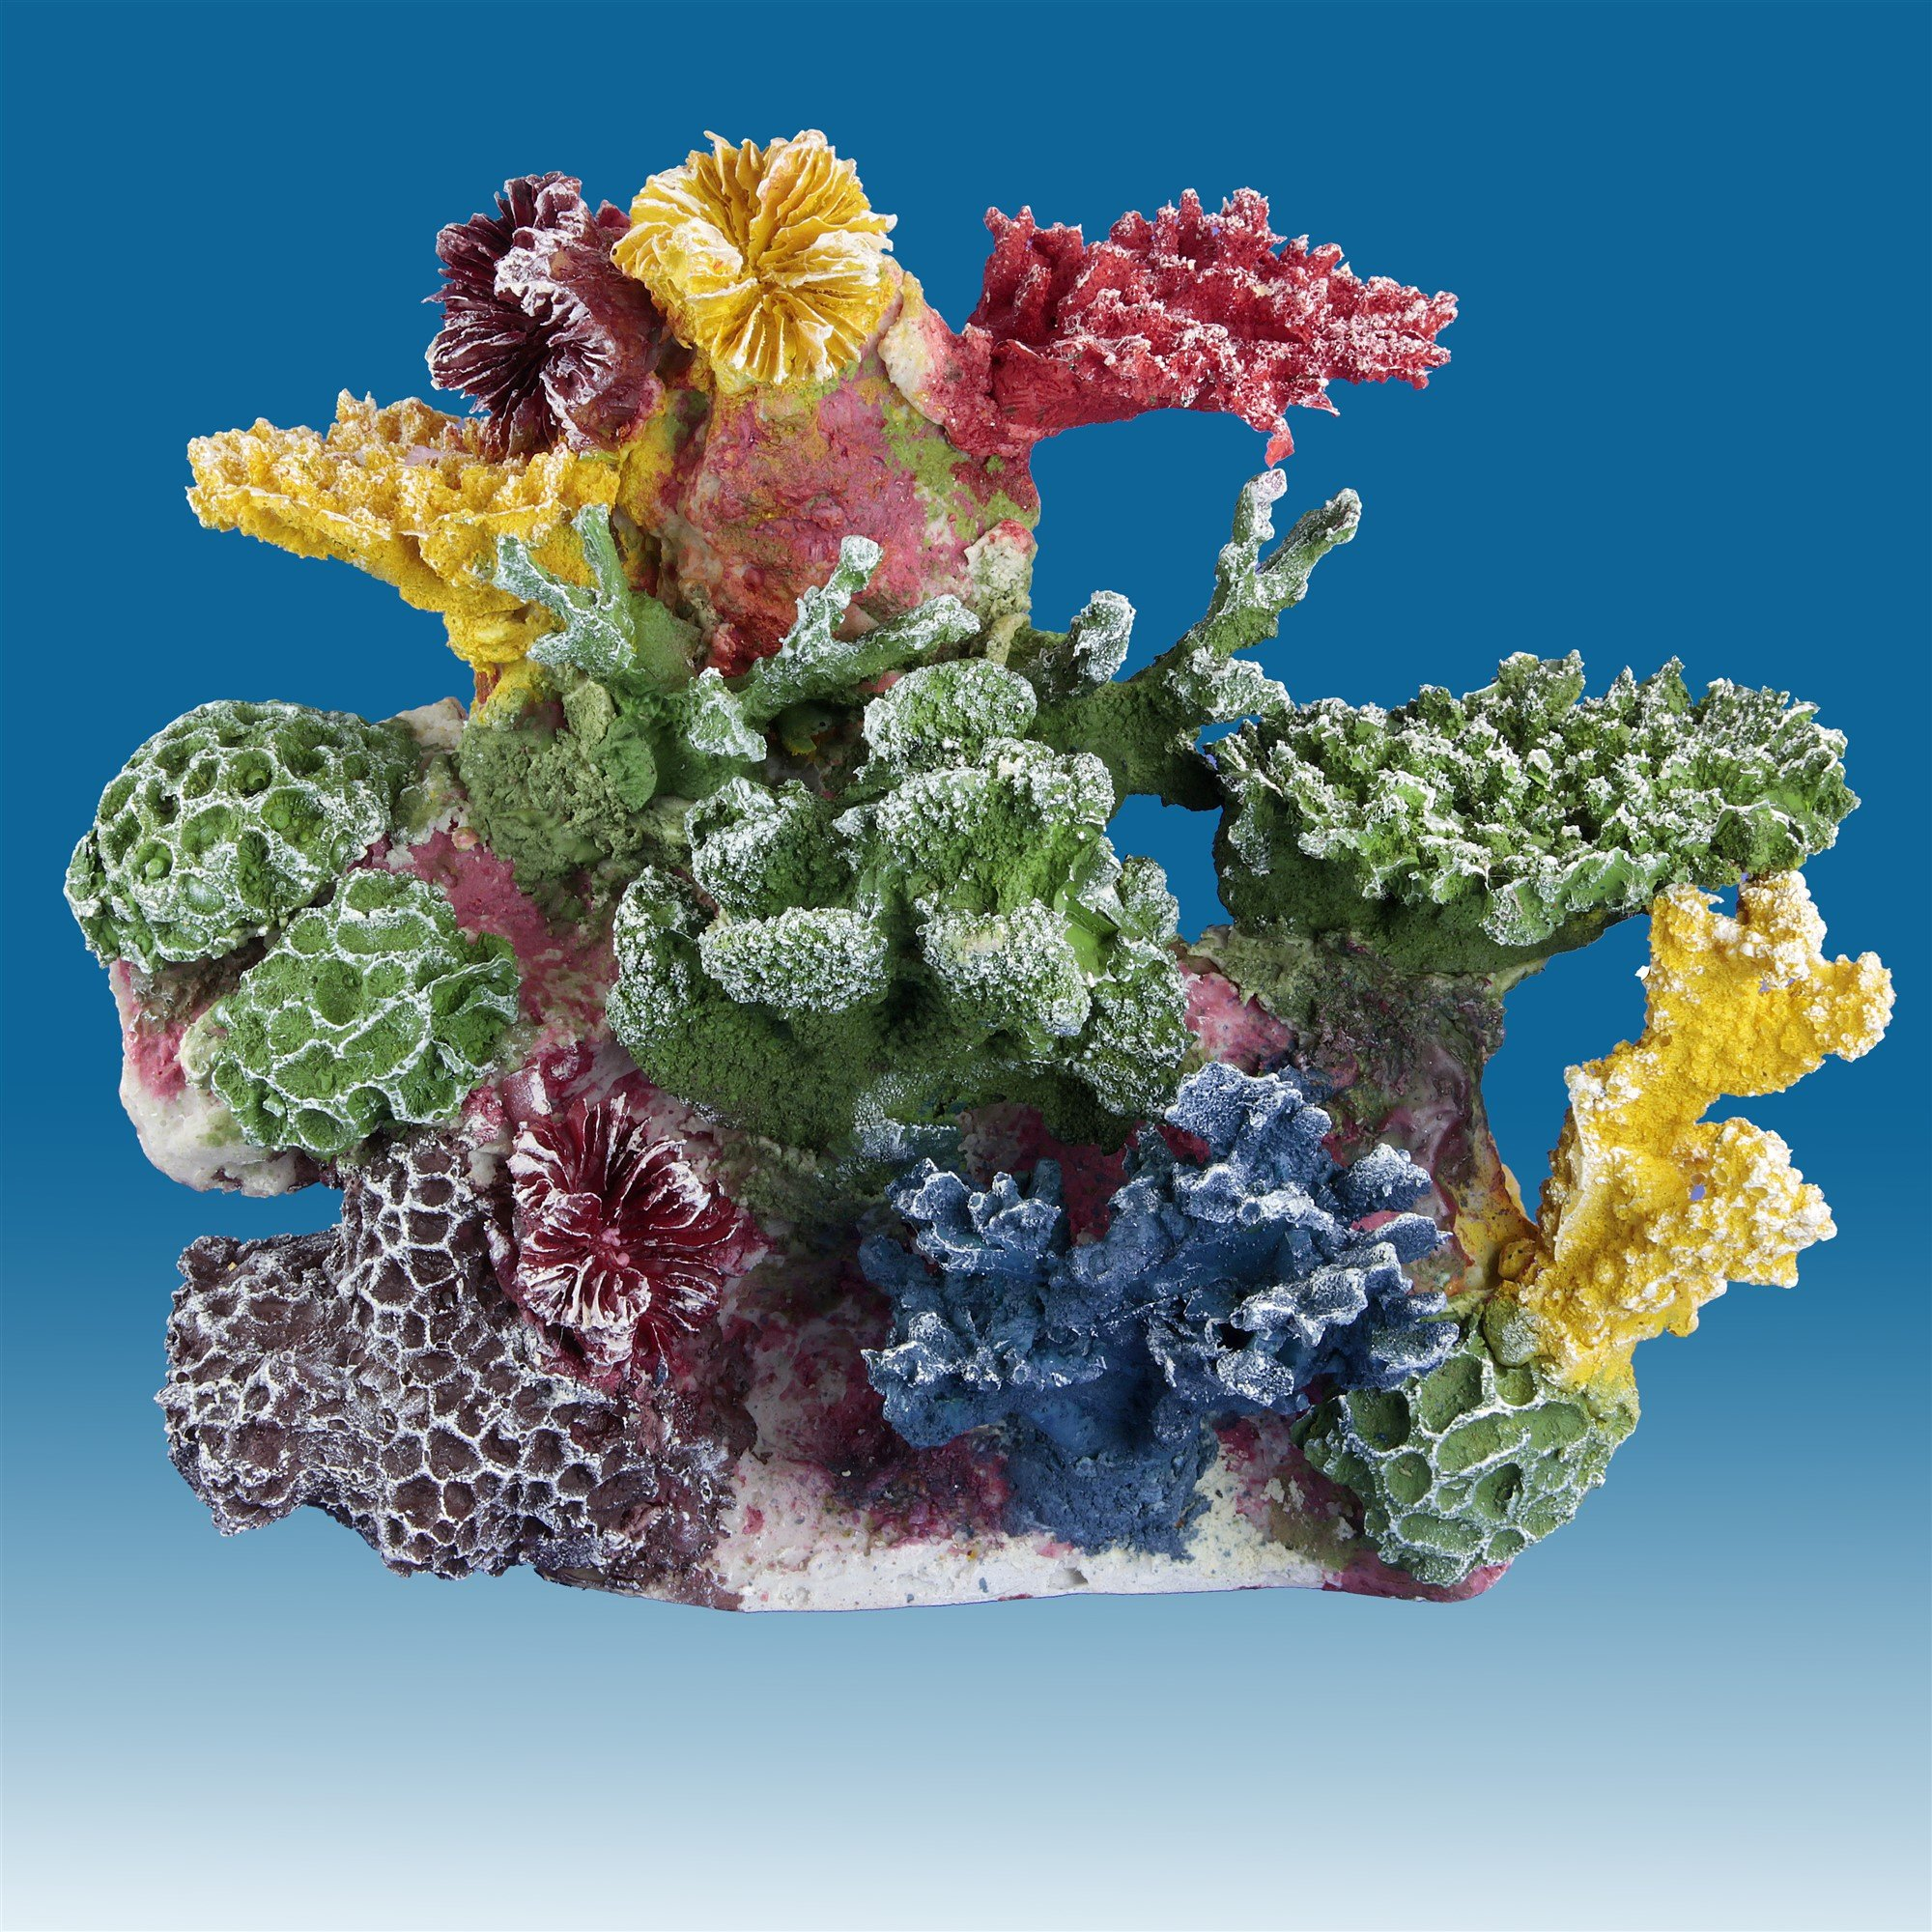 Instant Reef DM035 Artificial Coral Inserts Decor, Fake Coral Reef Decorations for Colorful Freshwater Fish Aquariums, Marine and Saltwater Fish Tanks by Instant Reef